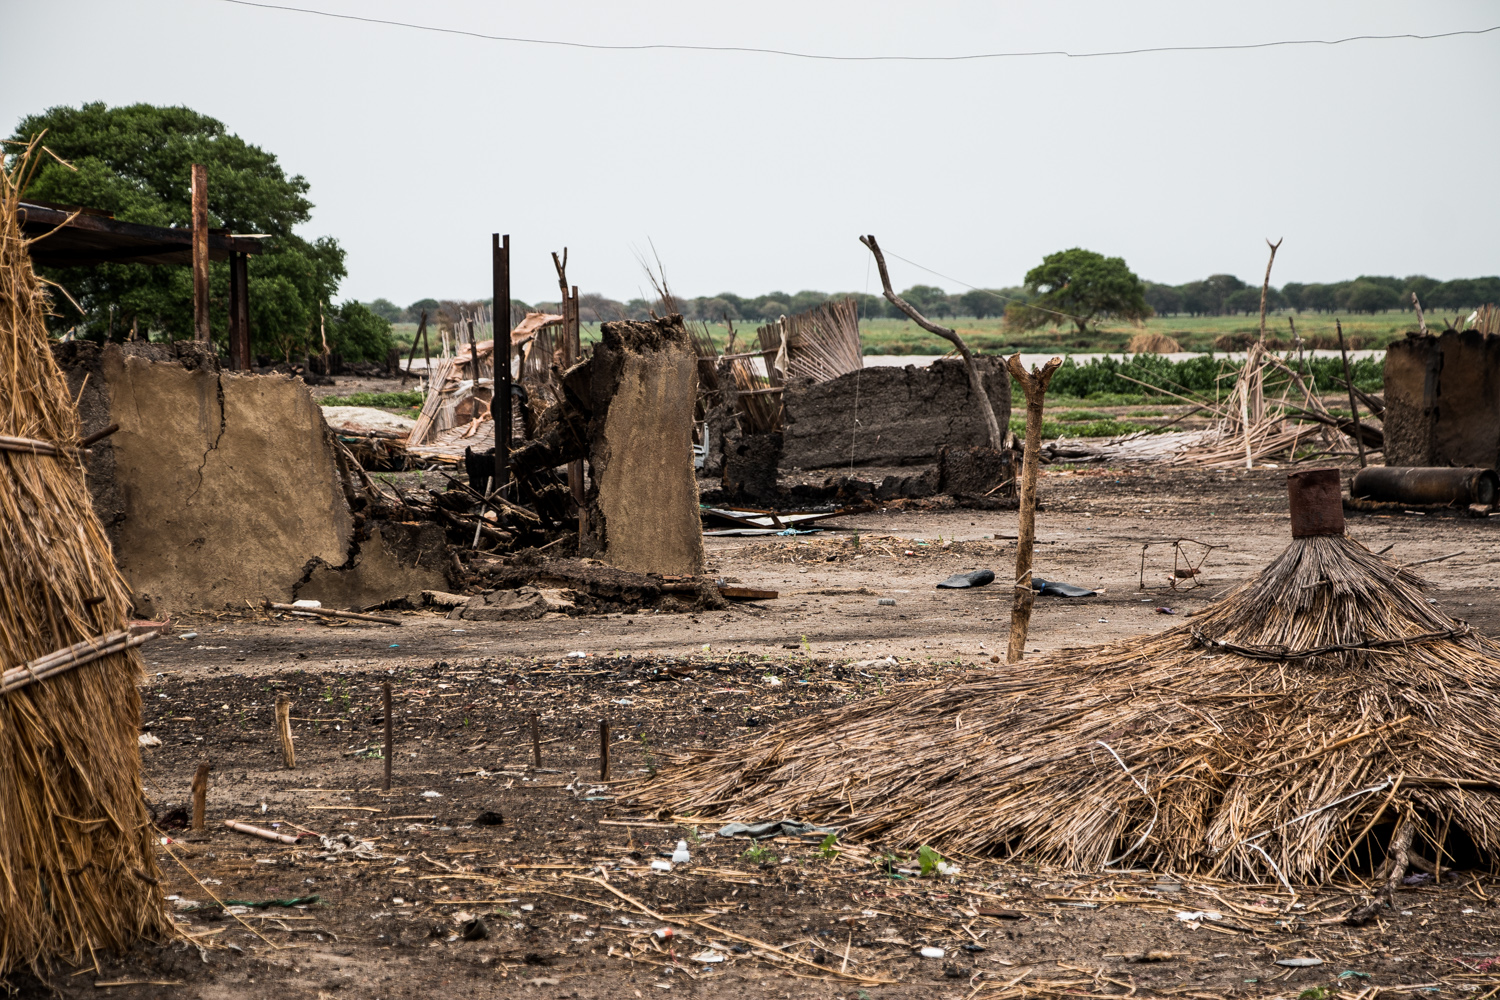 Melut Town in South Sudan's conflicted Upper Nile state was destroyed in mid-May during a battle between government and rebel forces. [Ashley Hamer/Al Jazeera]